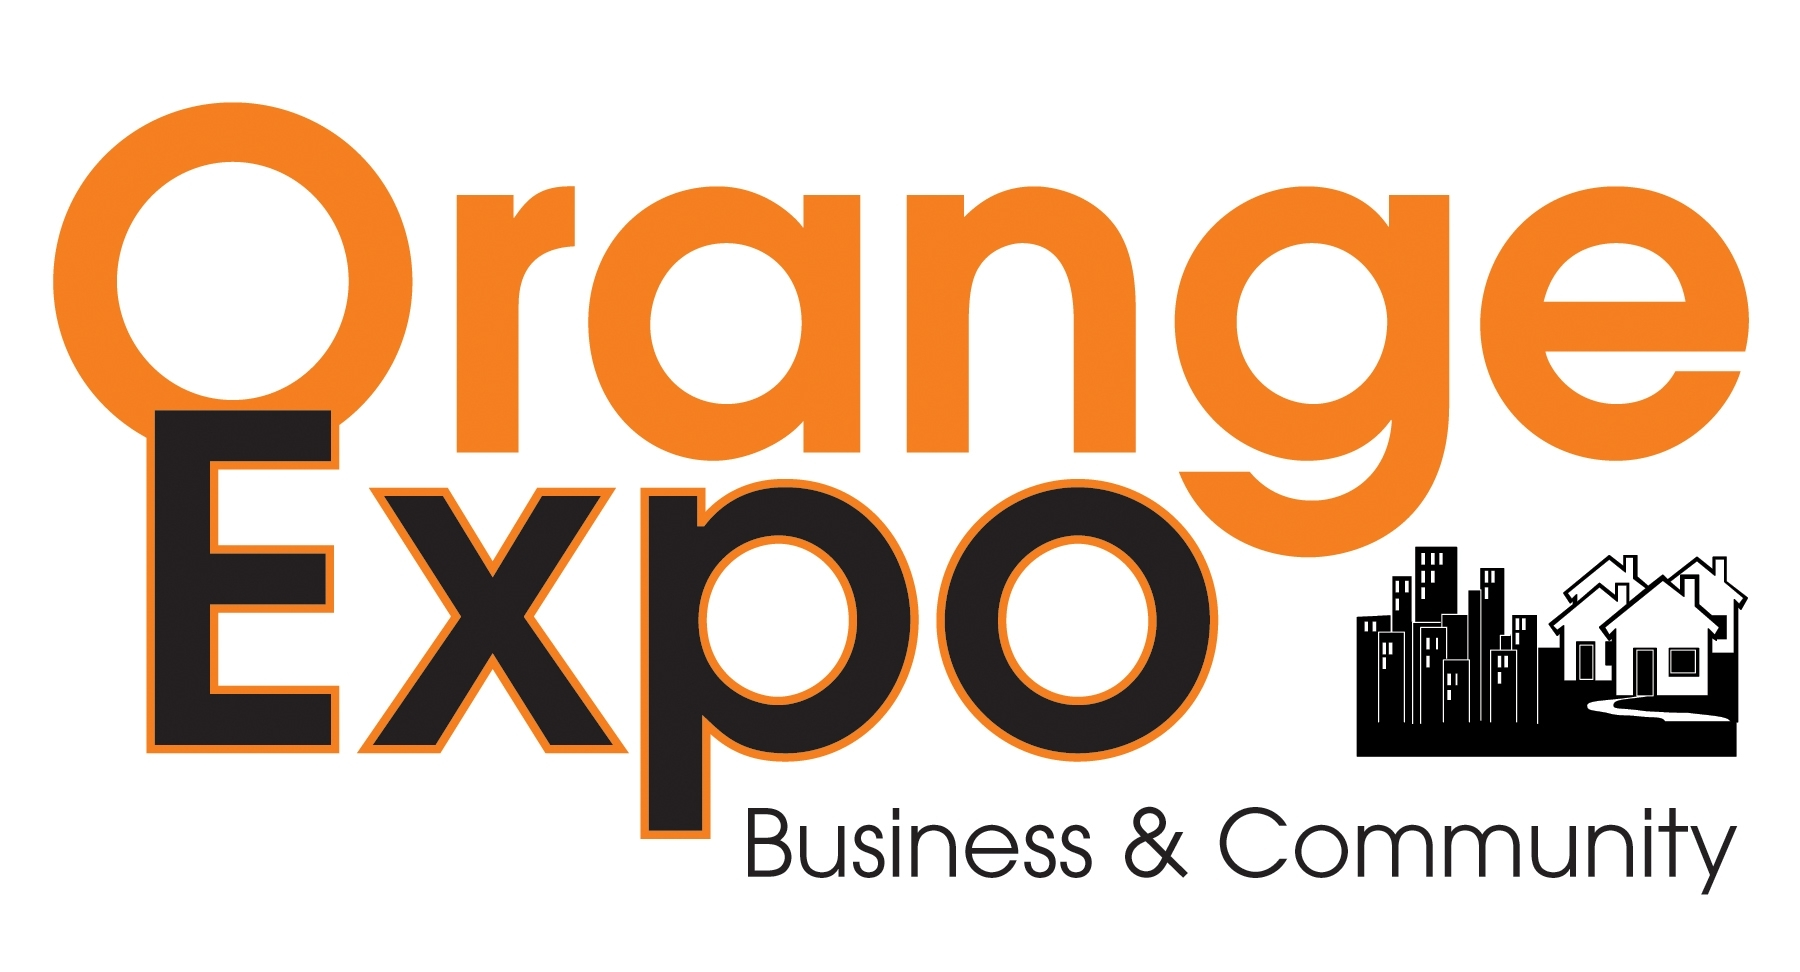 17th Annual Orange Business & Community Expo